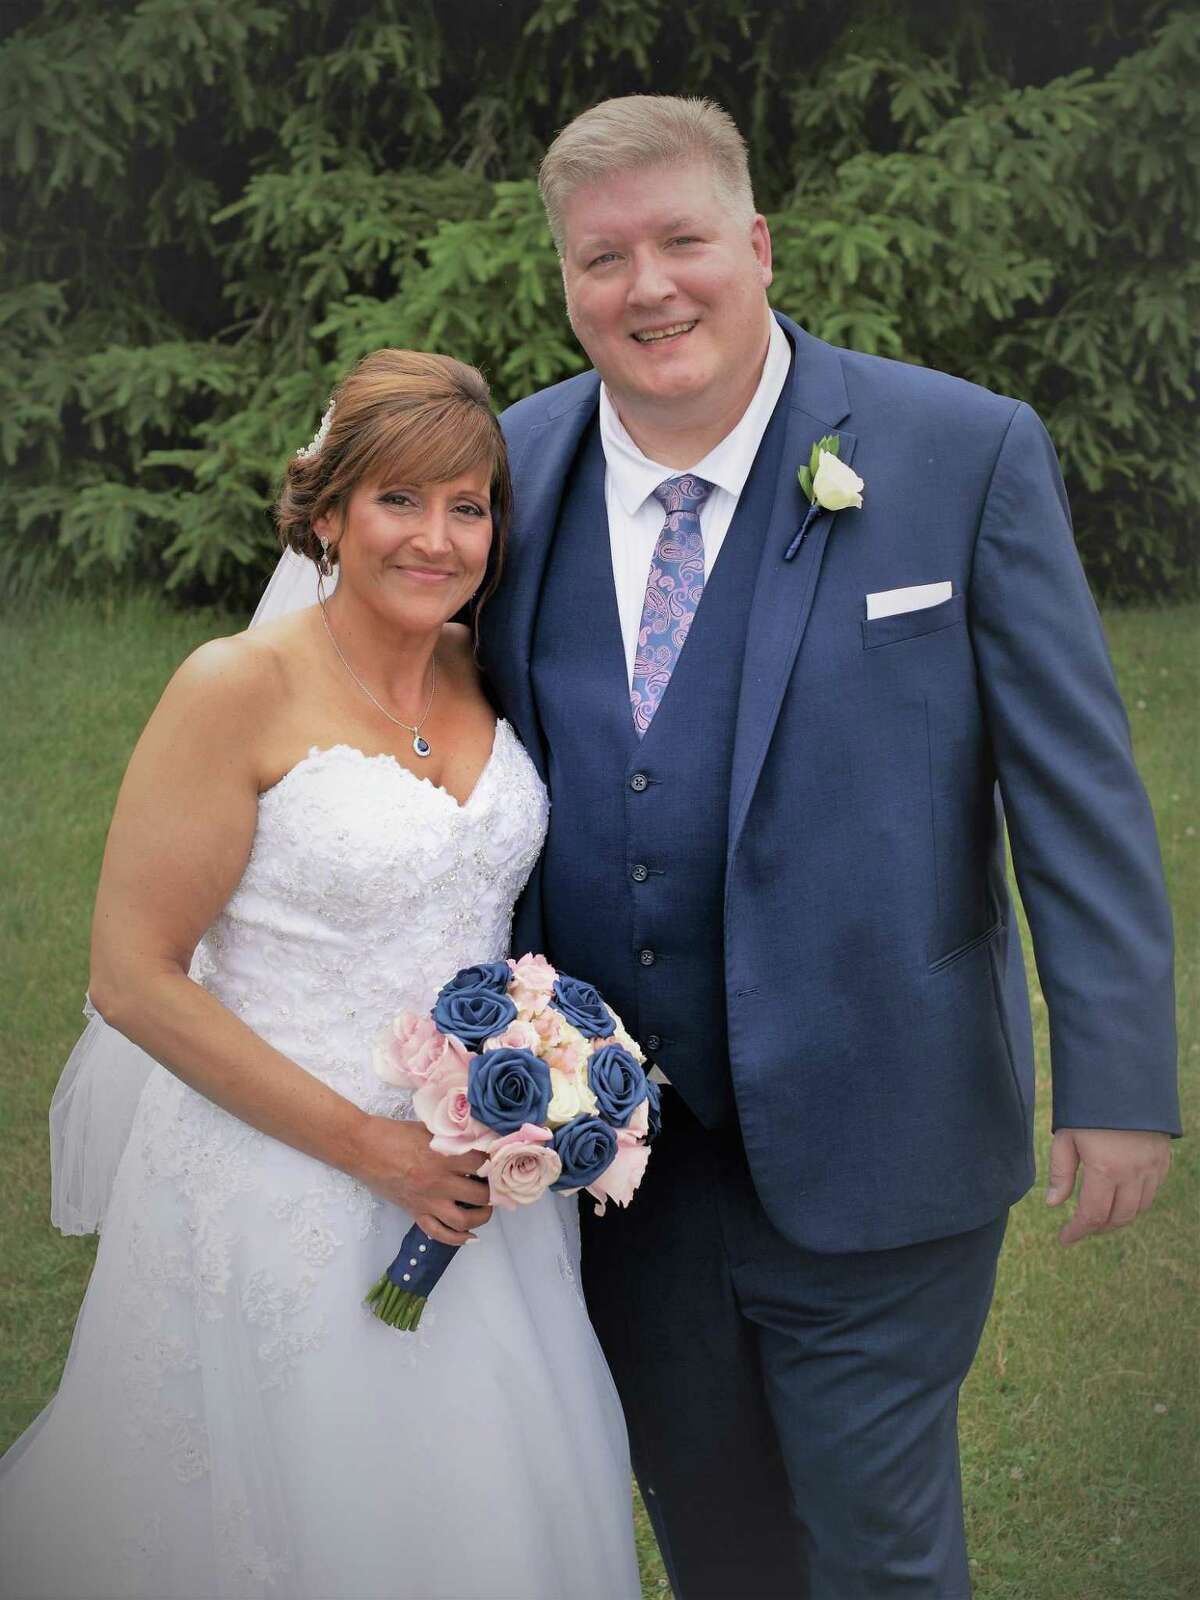 Susan Geib, of New Milford, and William J. Pollock, of Trumbull, married on June 19 at Anthony's Lake Club on Lake Kenosia in Danbury.